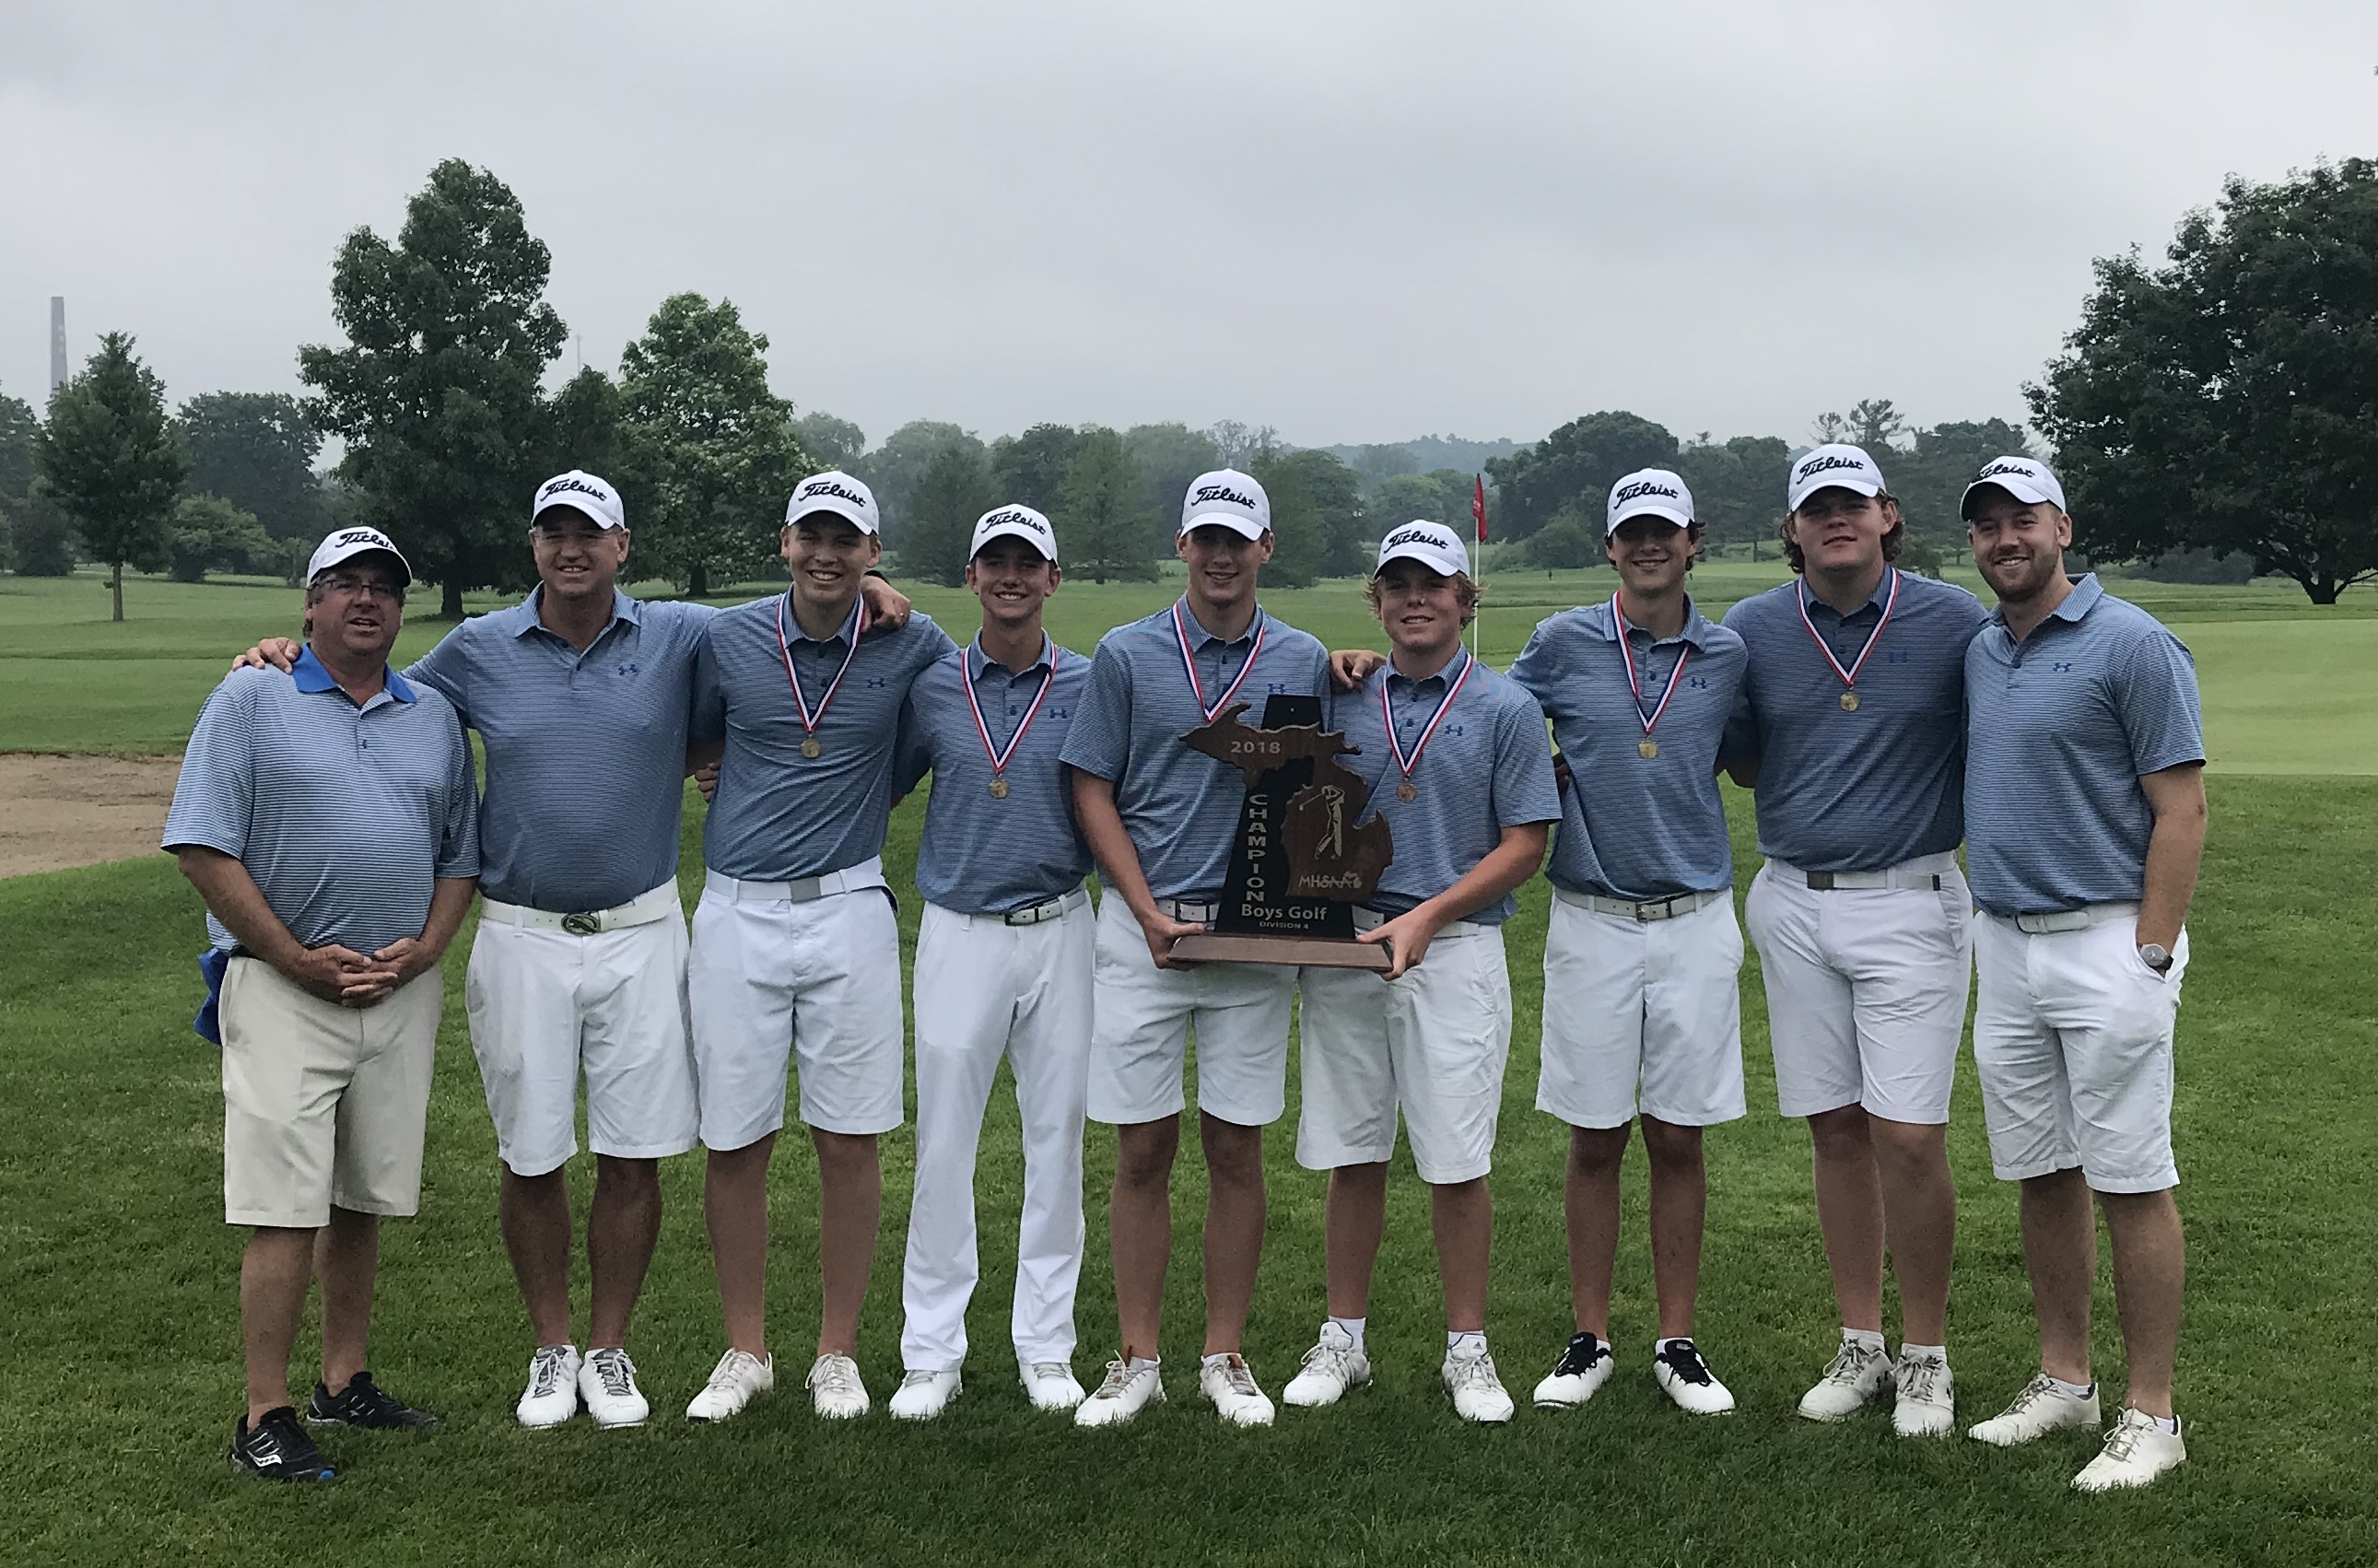 Boys Golf State Champions